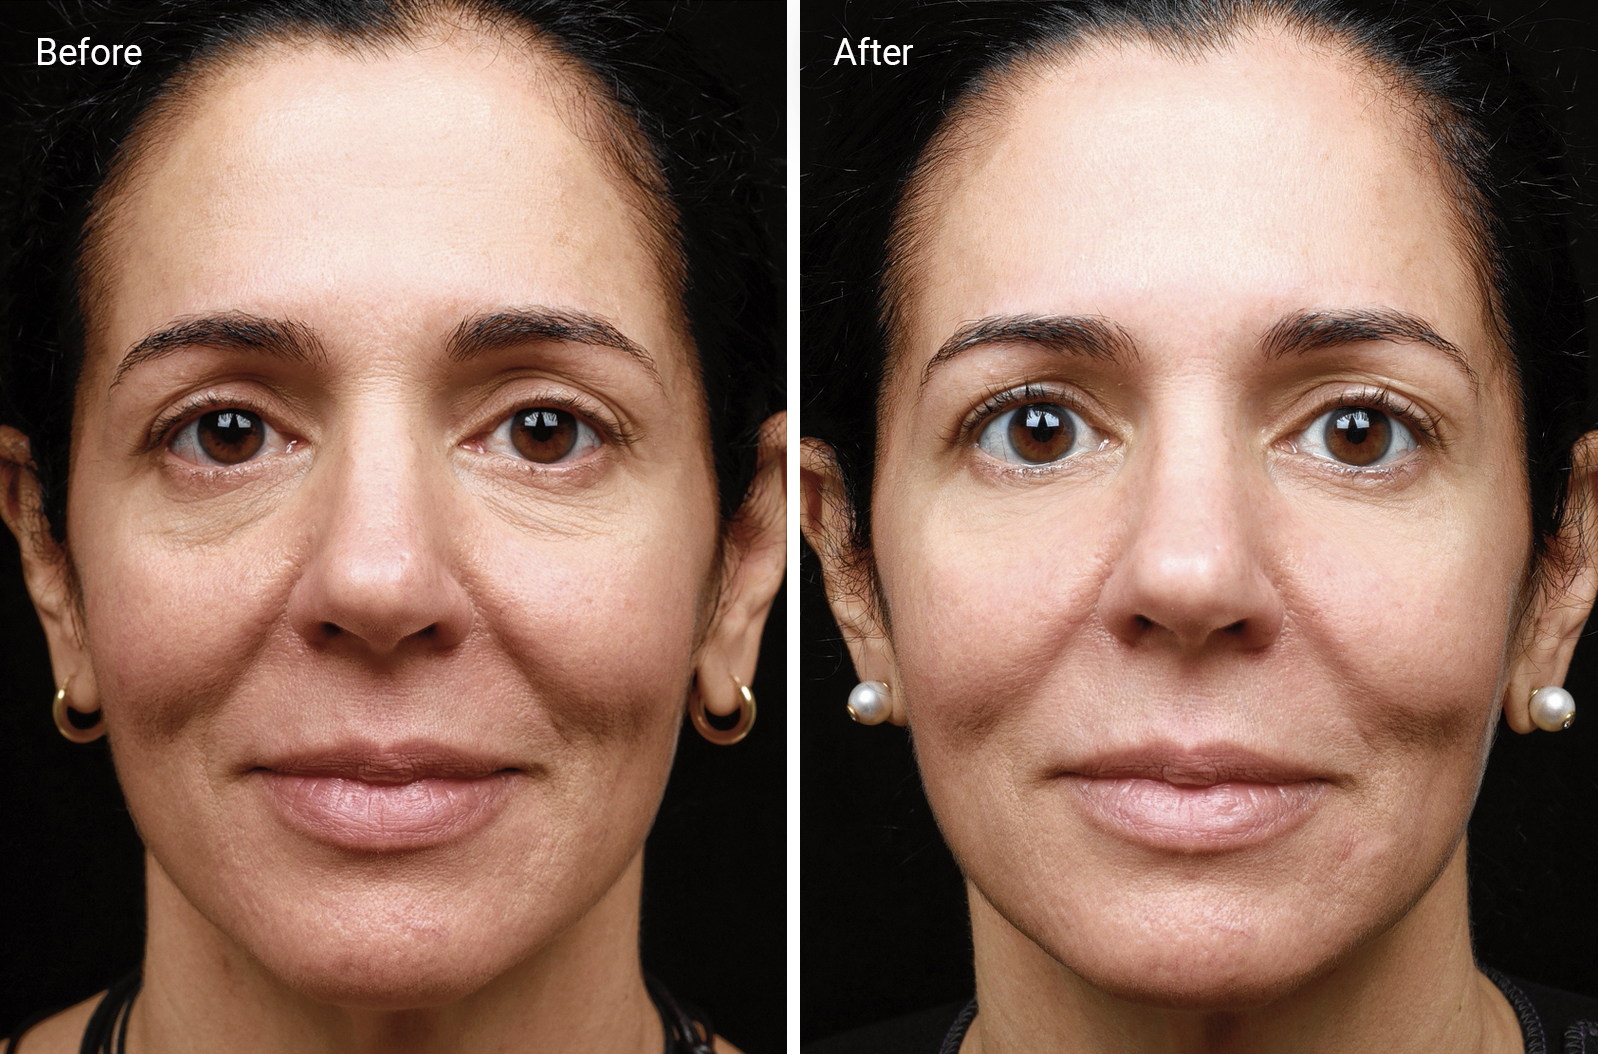 Radio Frequency Skin Tightening Does It Work And Is It Safe